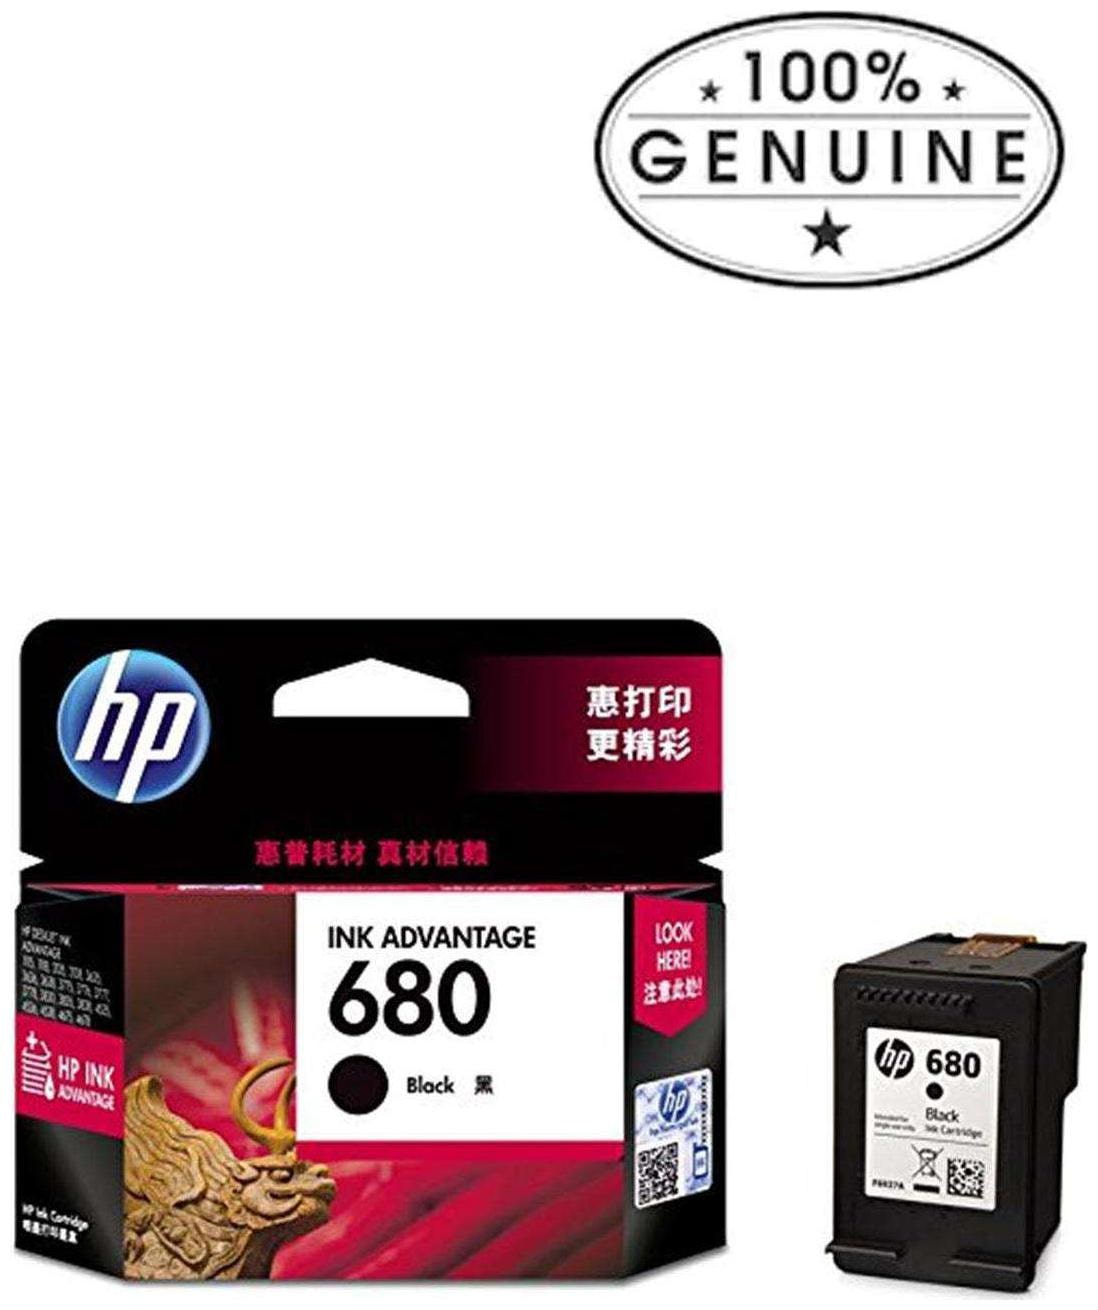 HP 680 Original Ink Advantage Cartridge  Black  by Pine Digital